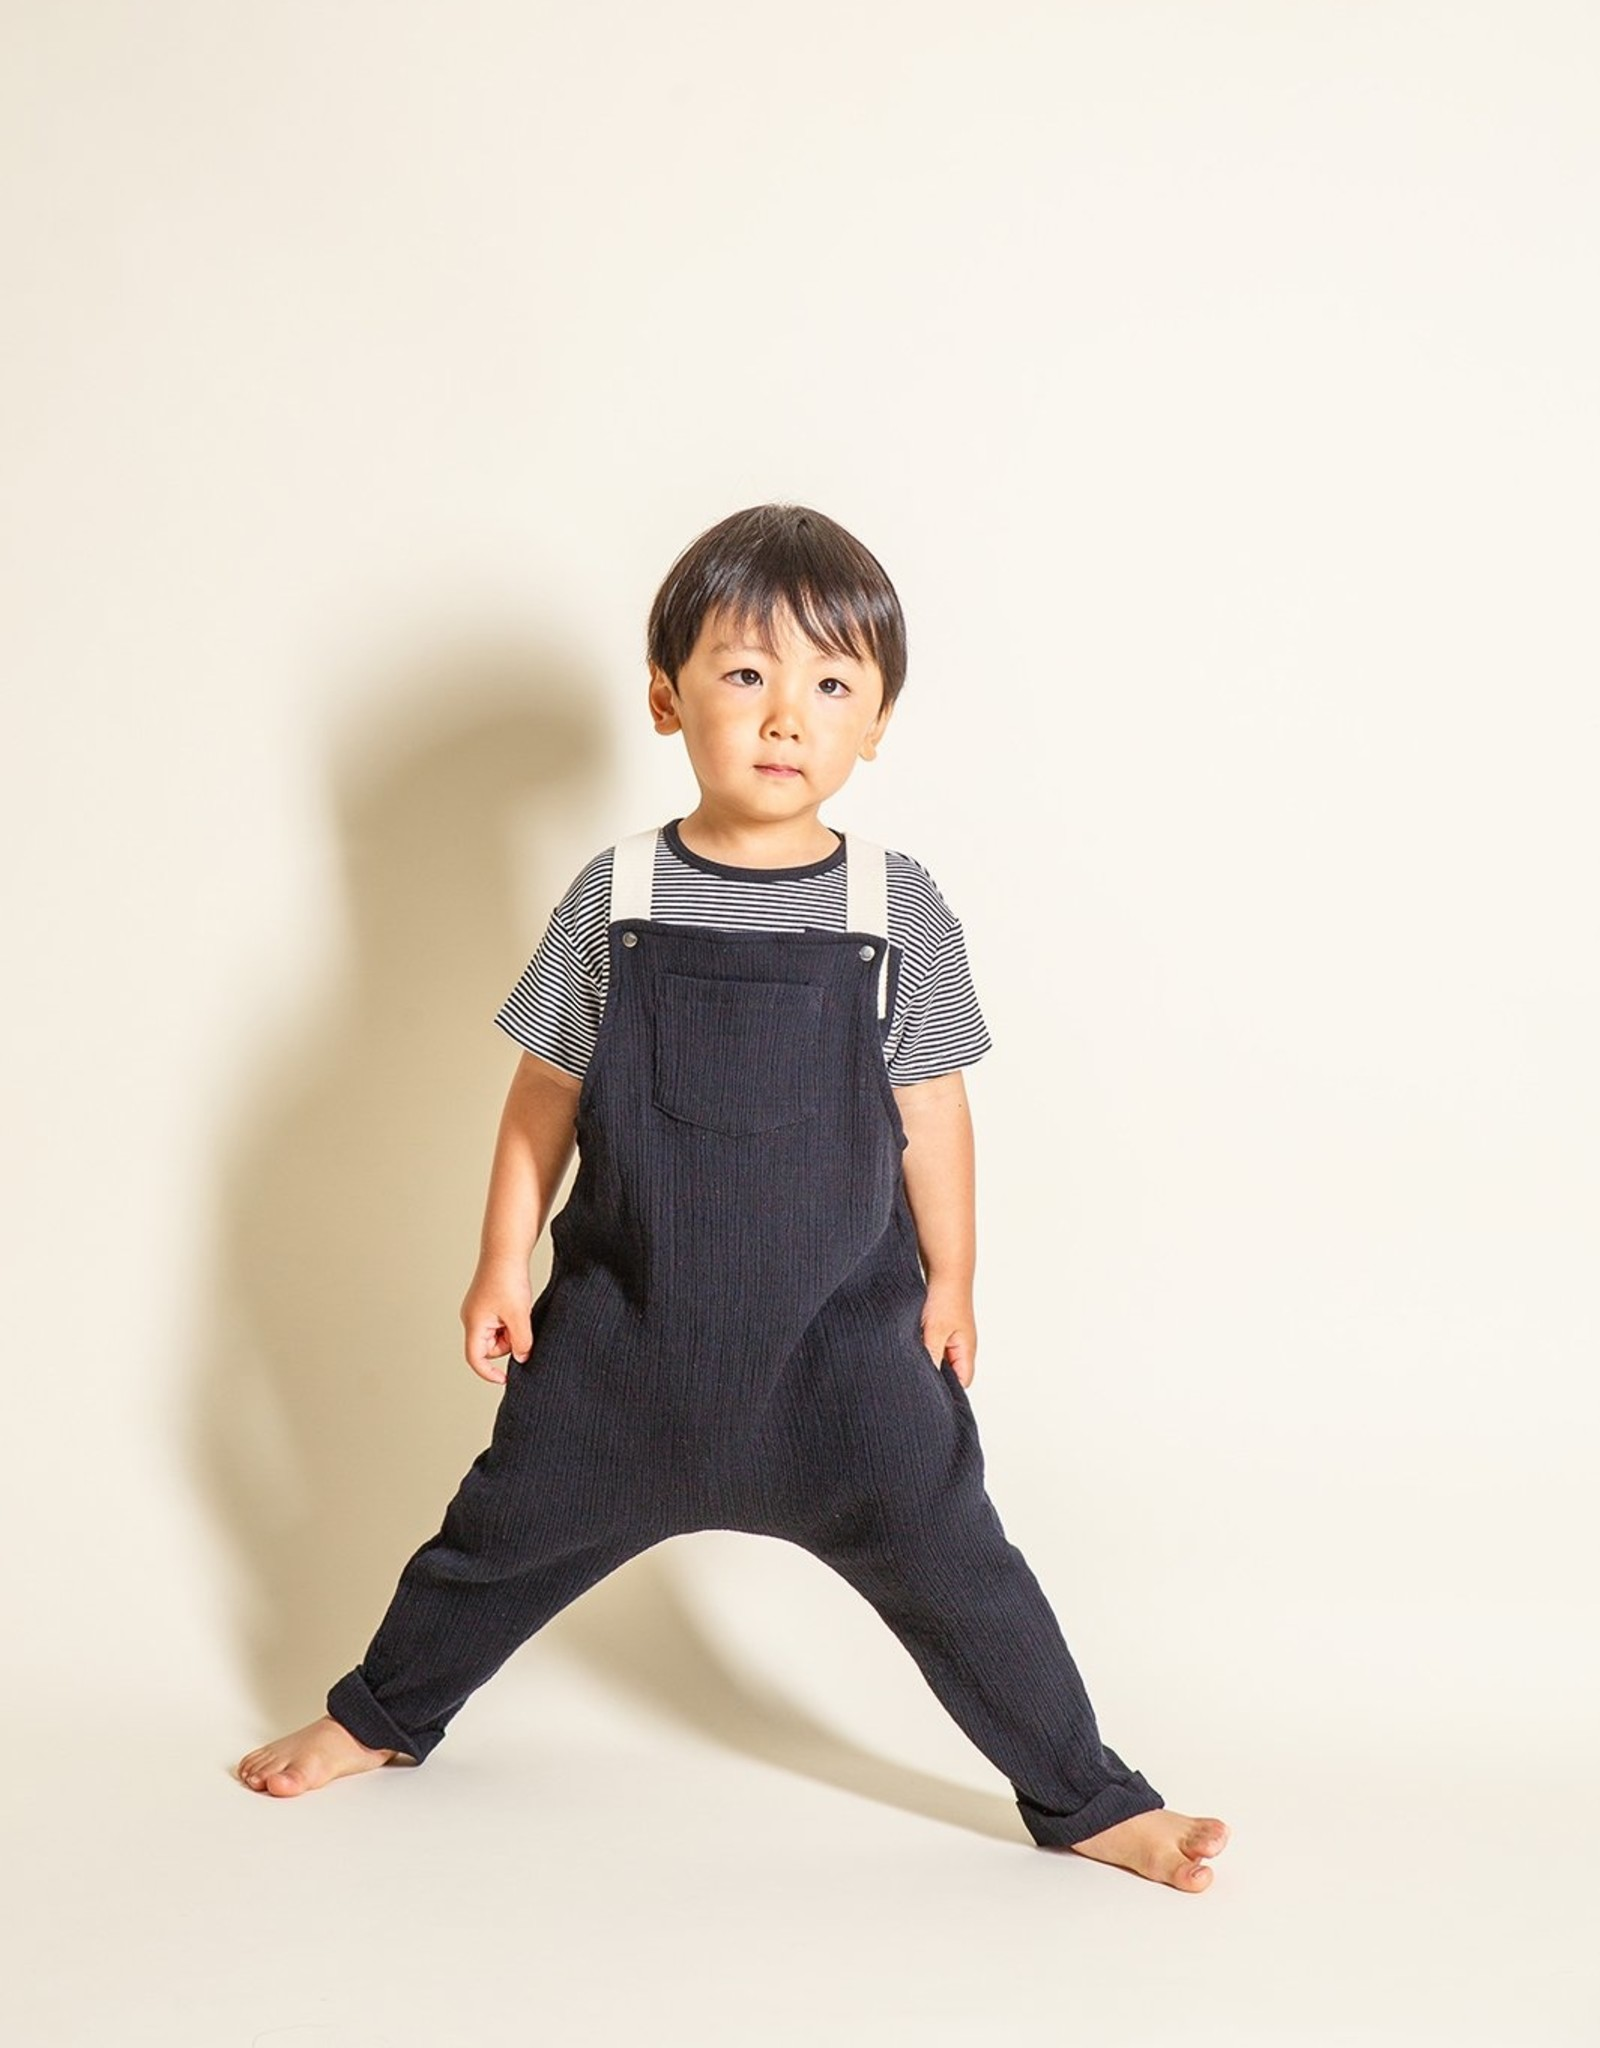 Greige Unisex Overalls - Black or Chambray